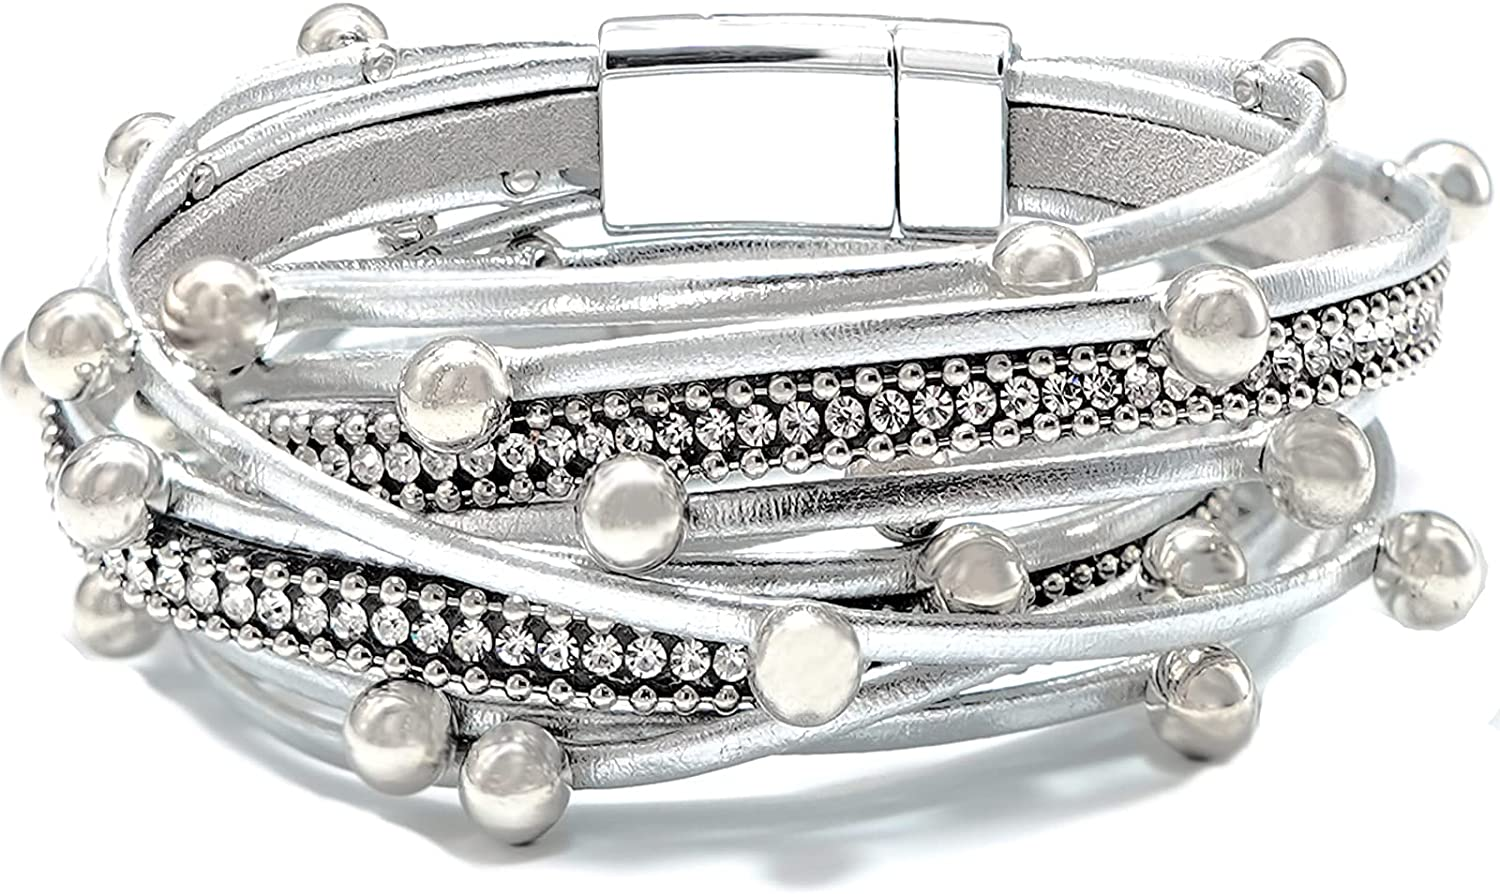 Chamqueen Multilayer Leather Bracelet Magnetic Buckle Wrap Bangle for Women